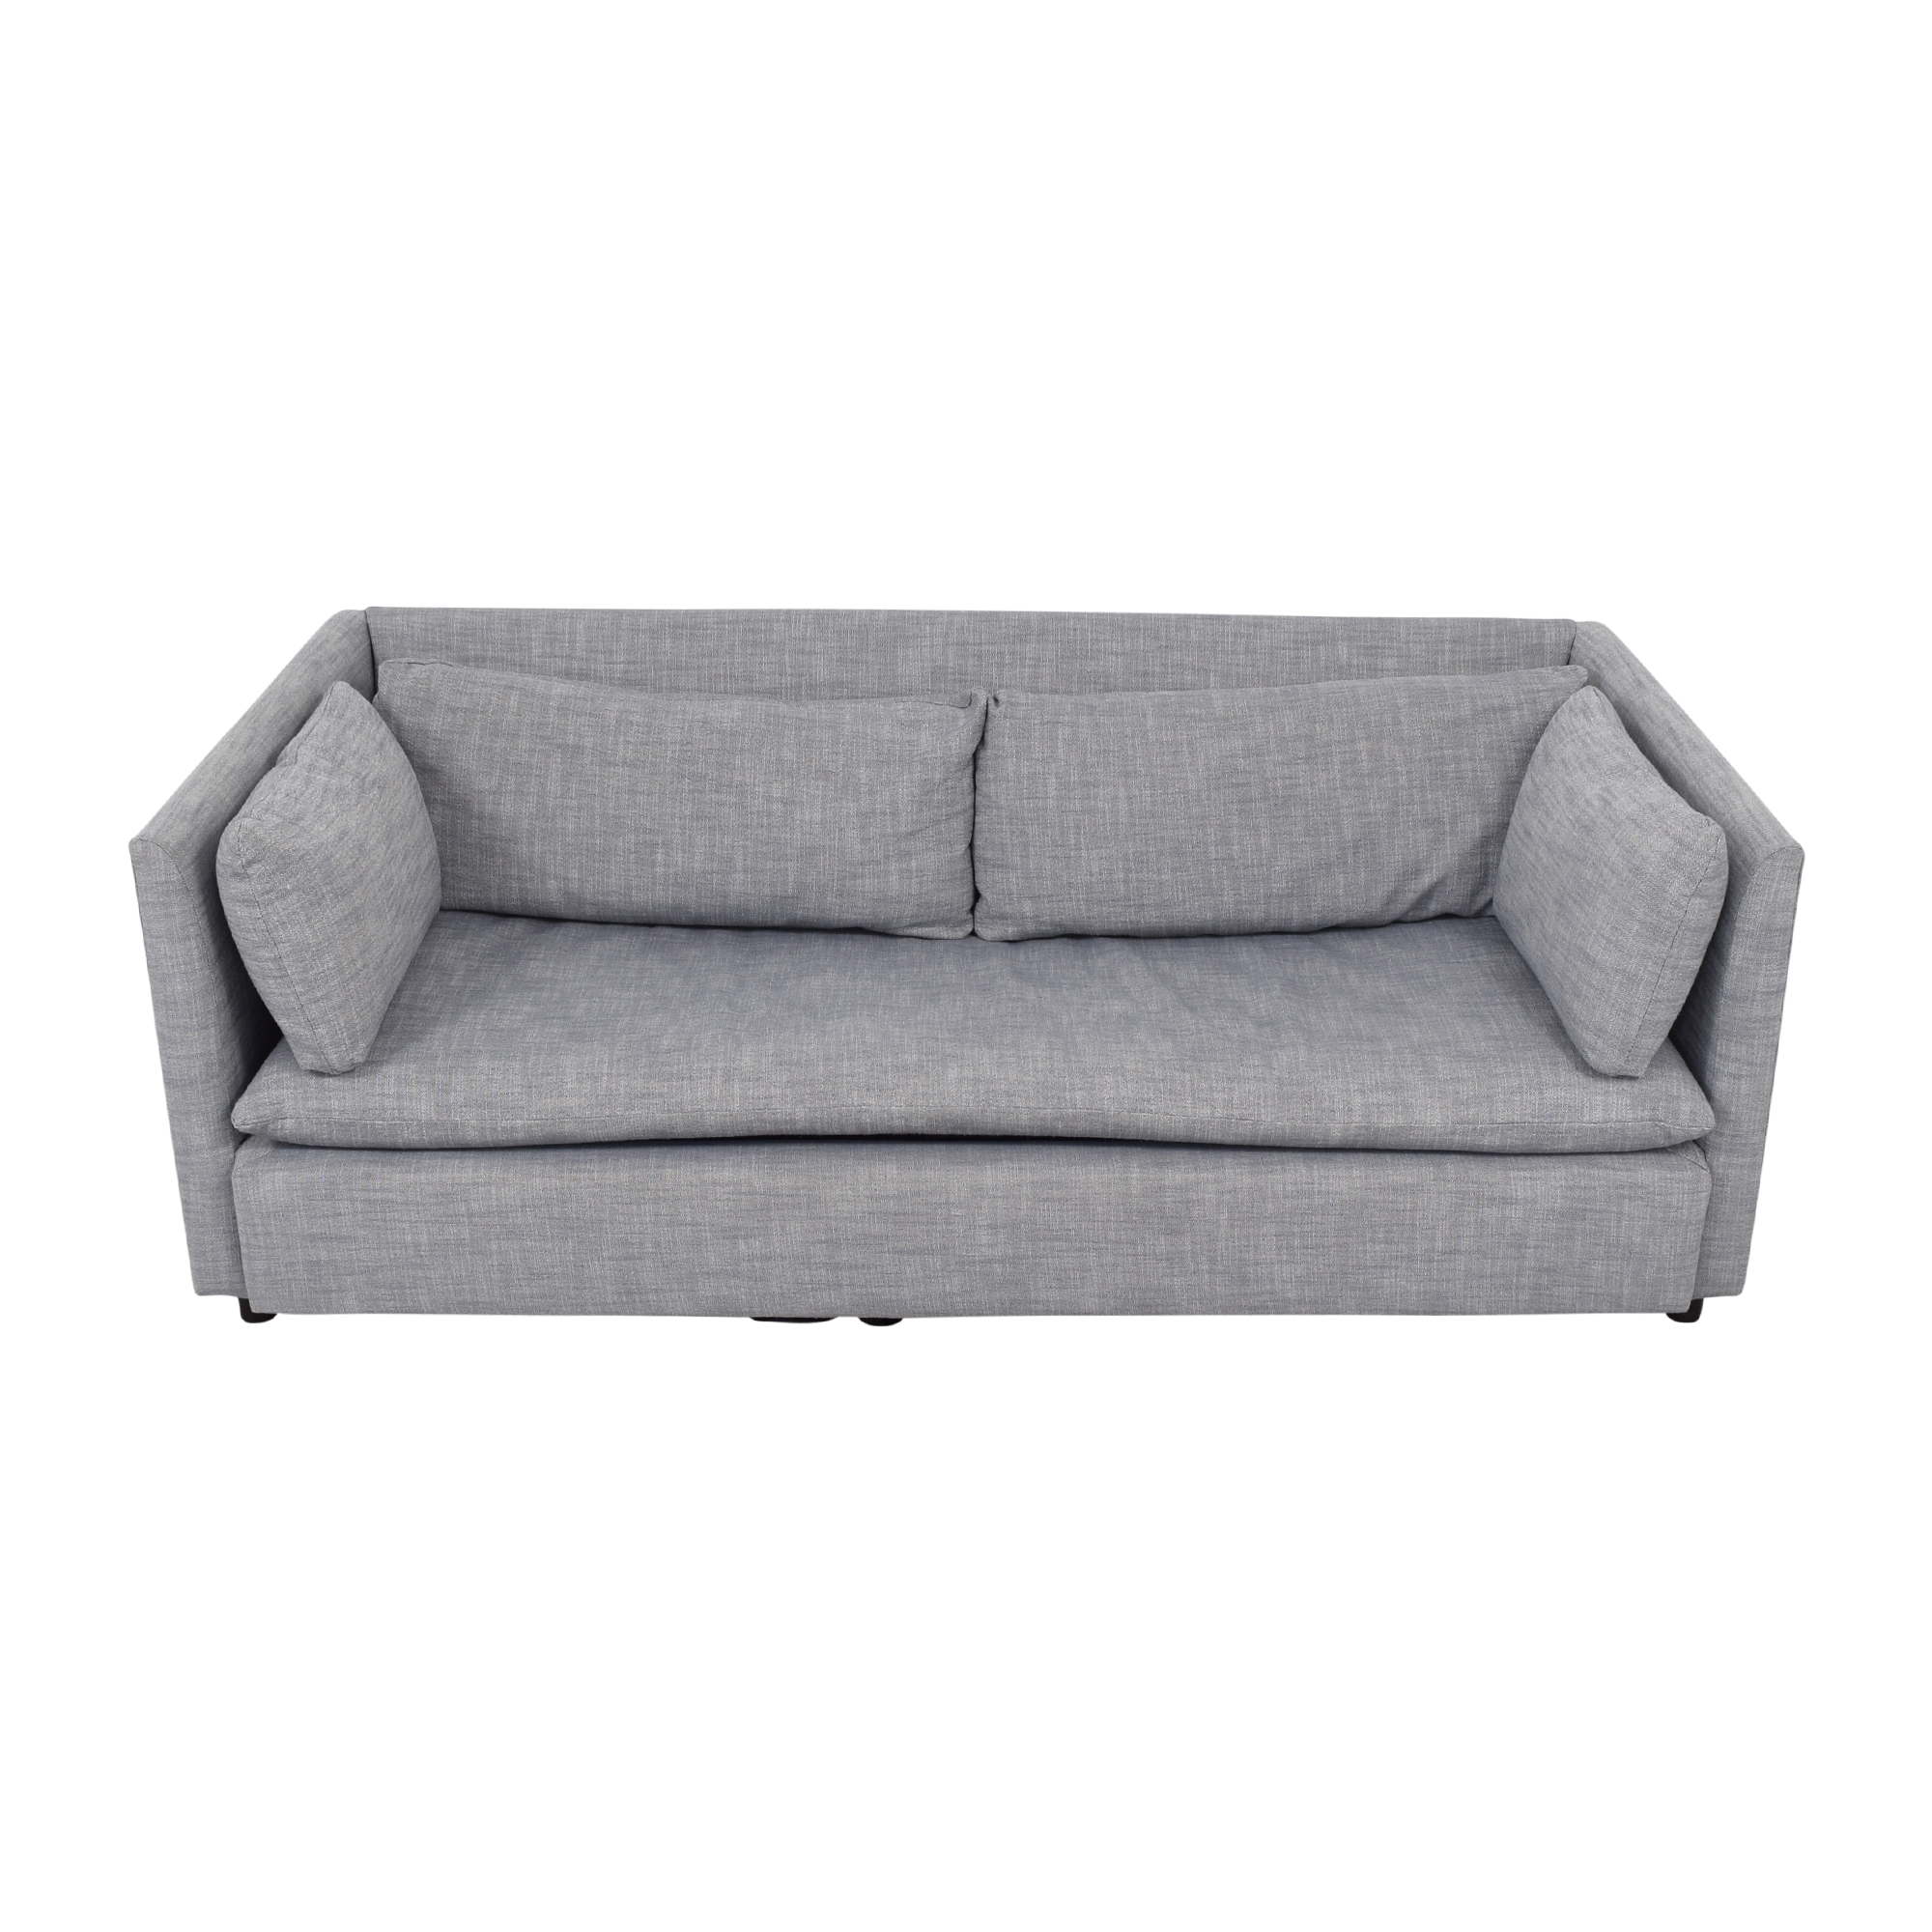 shop West Elm Shelter Queen Sleeper Sofa West Elm Sofa Beds